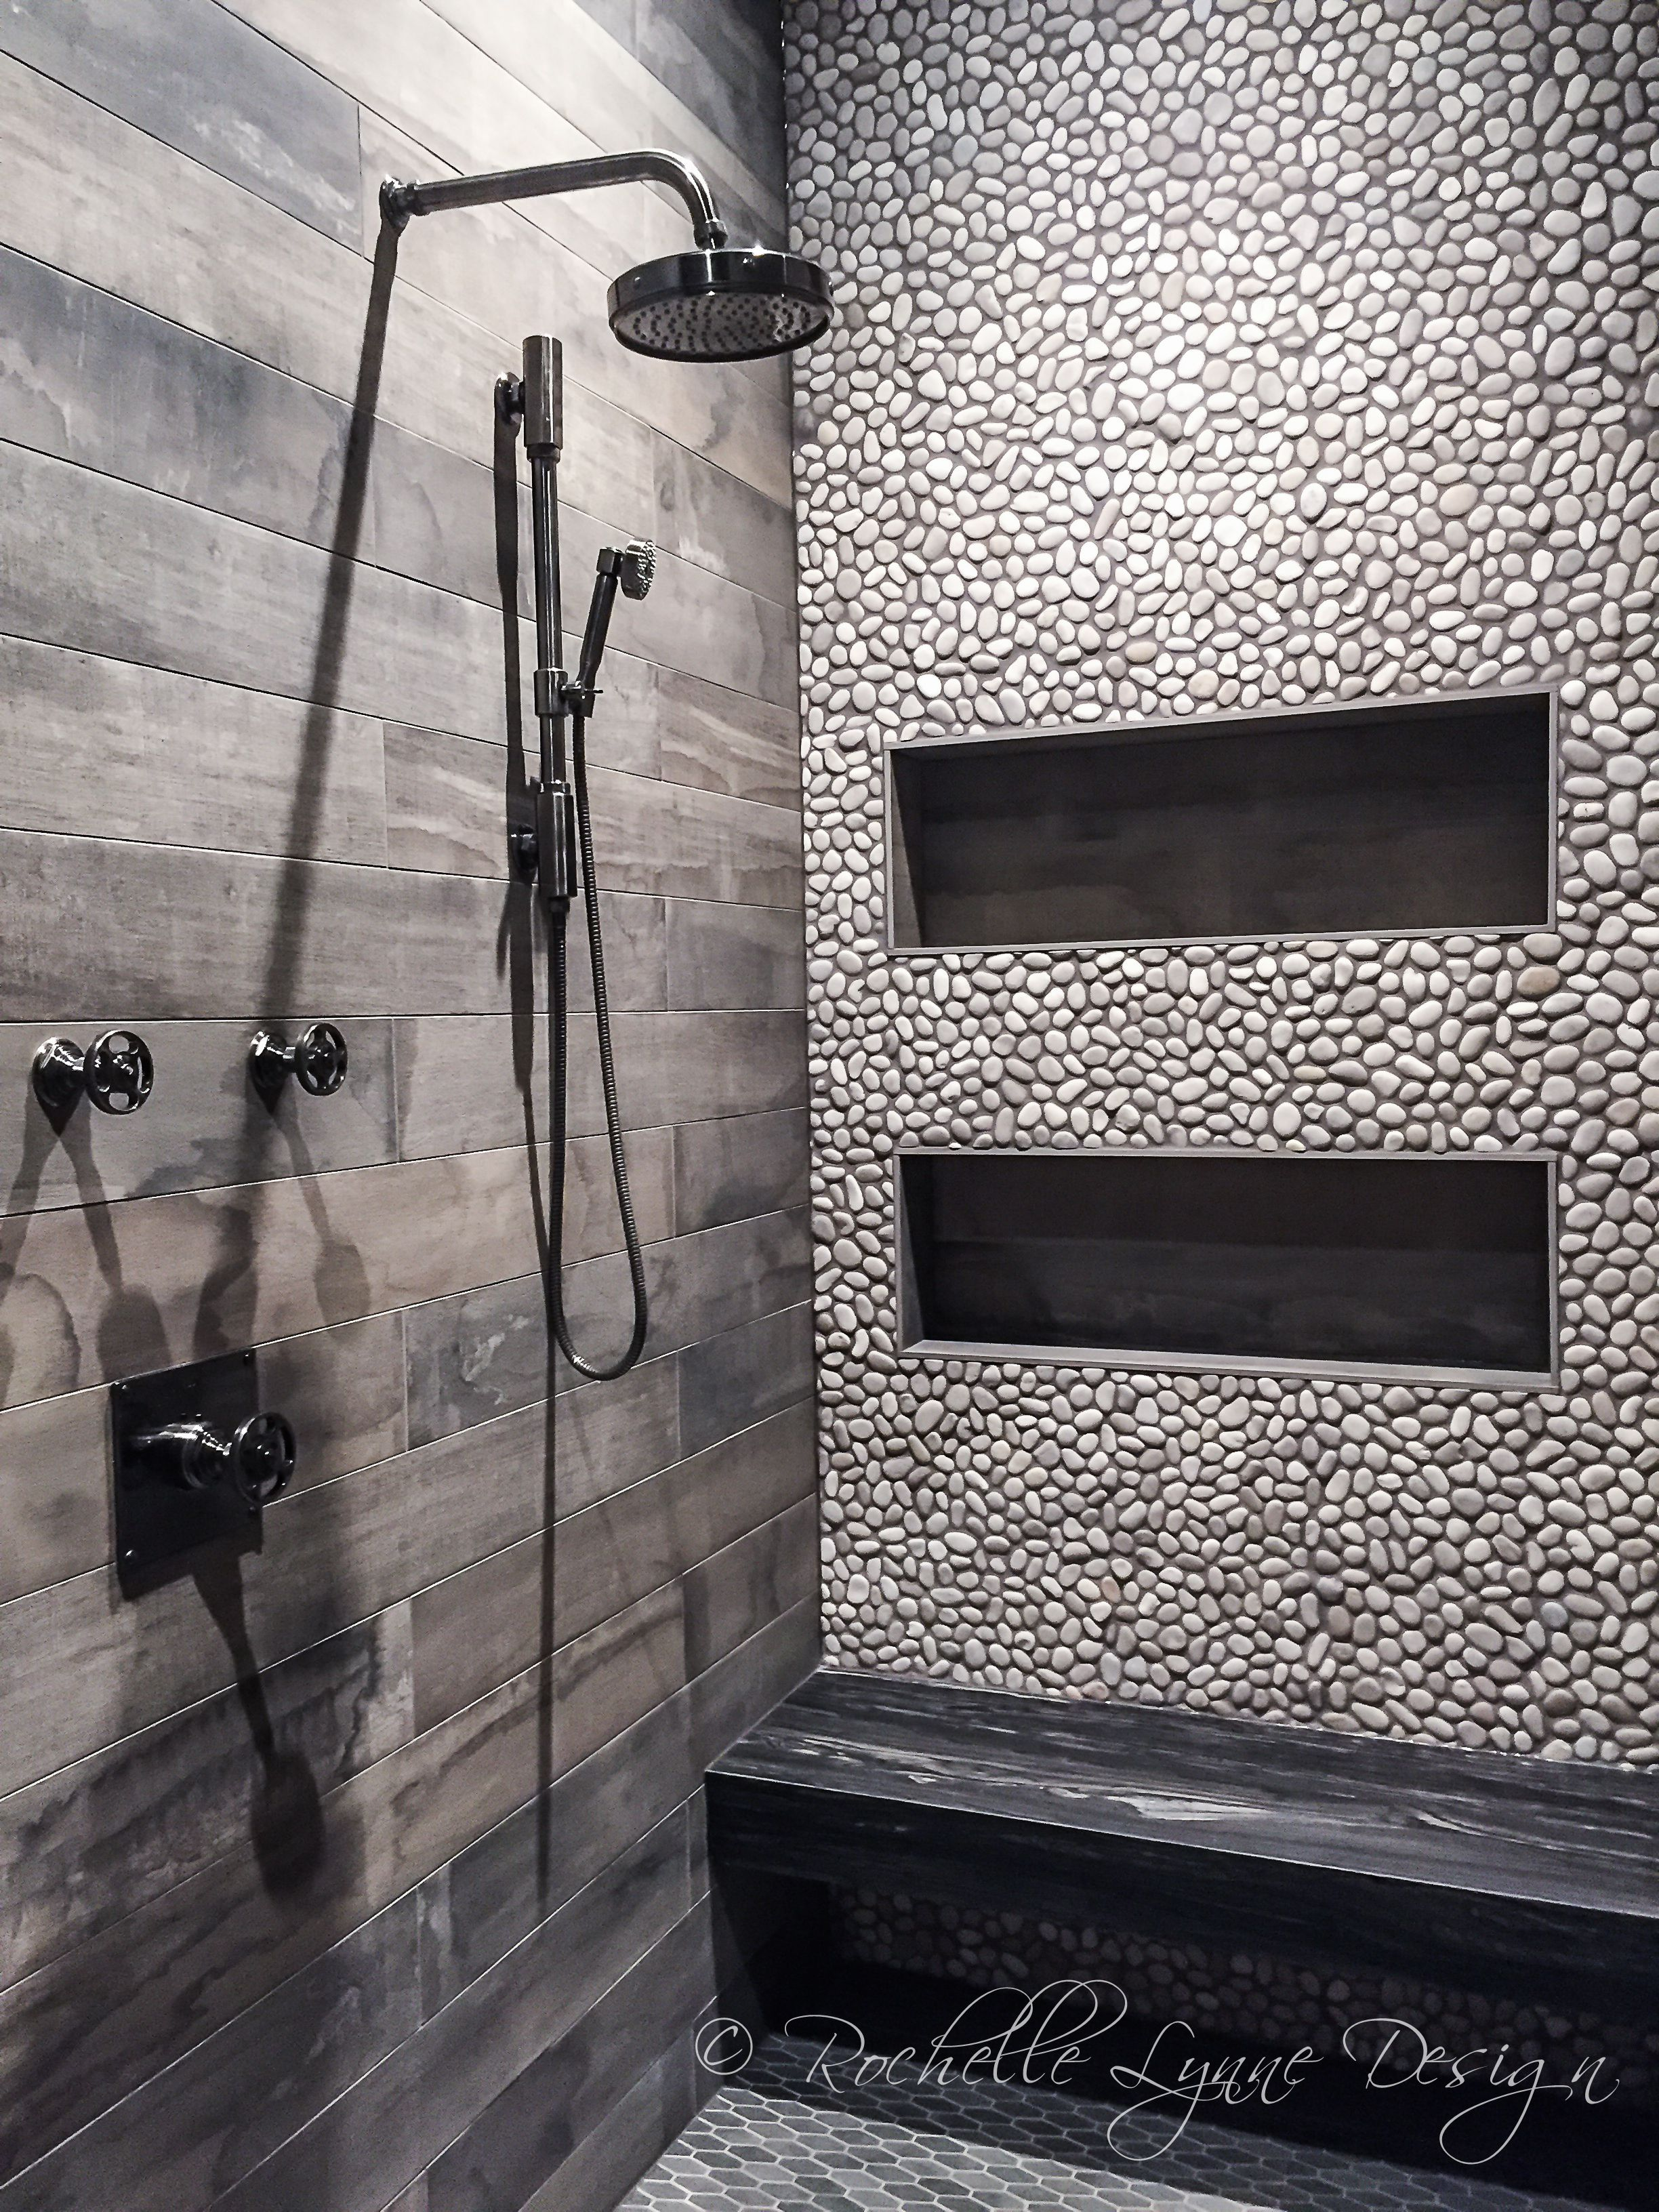 Wood look tile and pebbles in shower, bench seat of stone, large shower niches | Design by Rochelle Lynne Design, Cochrane, AB